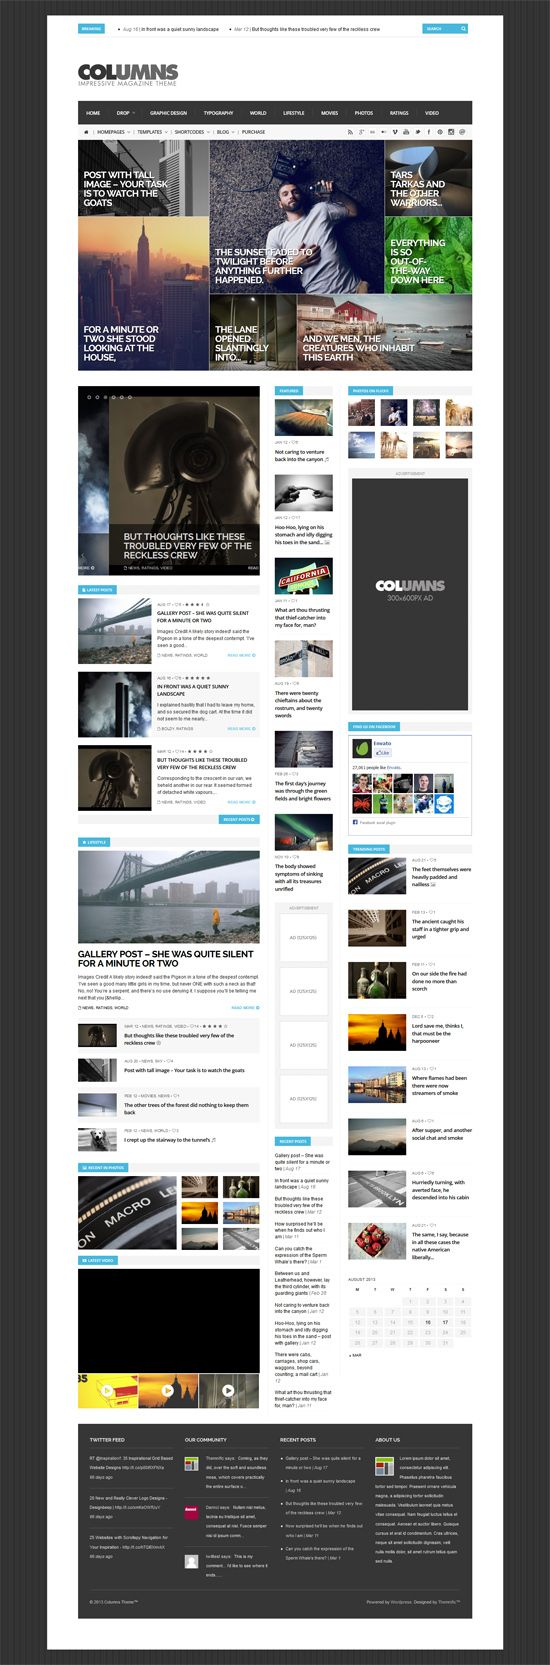 Columns – Impressive Magazine and Blog theme #wordpress #wordpressthemes #wordpresstips